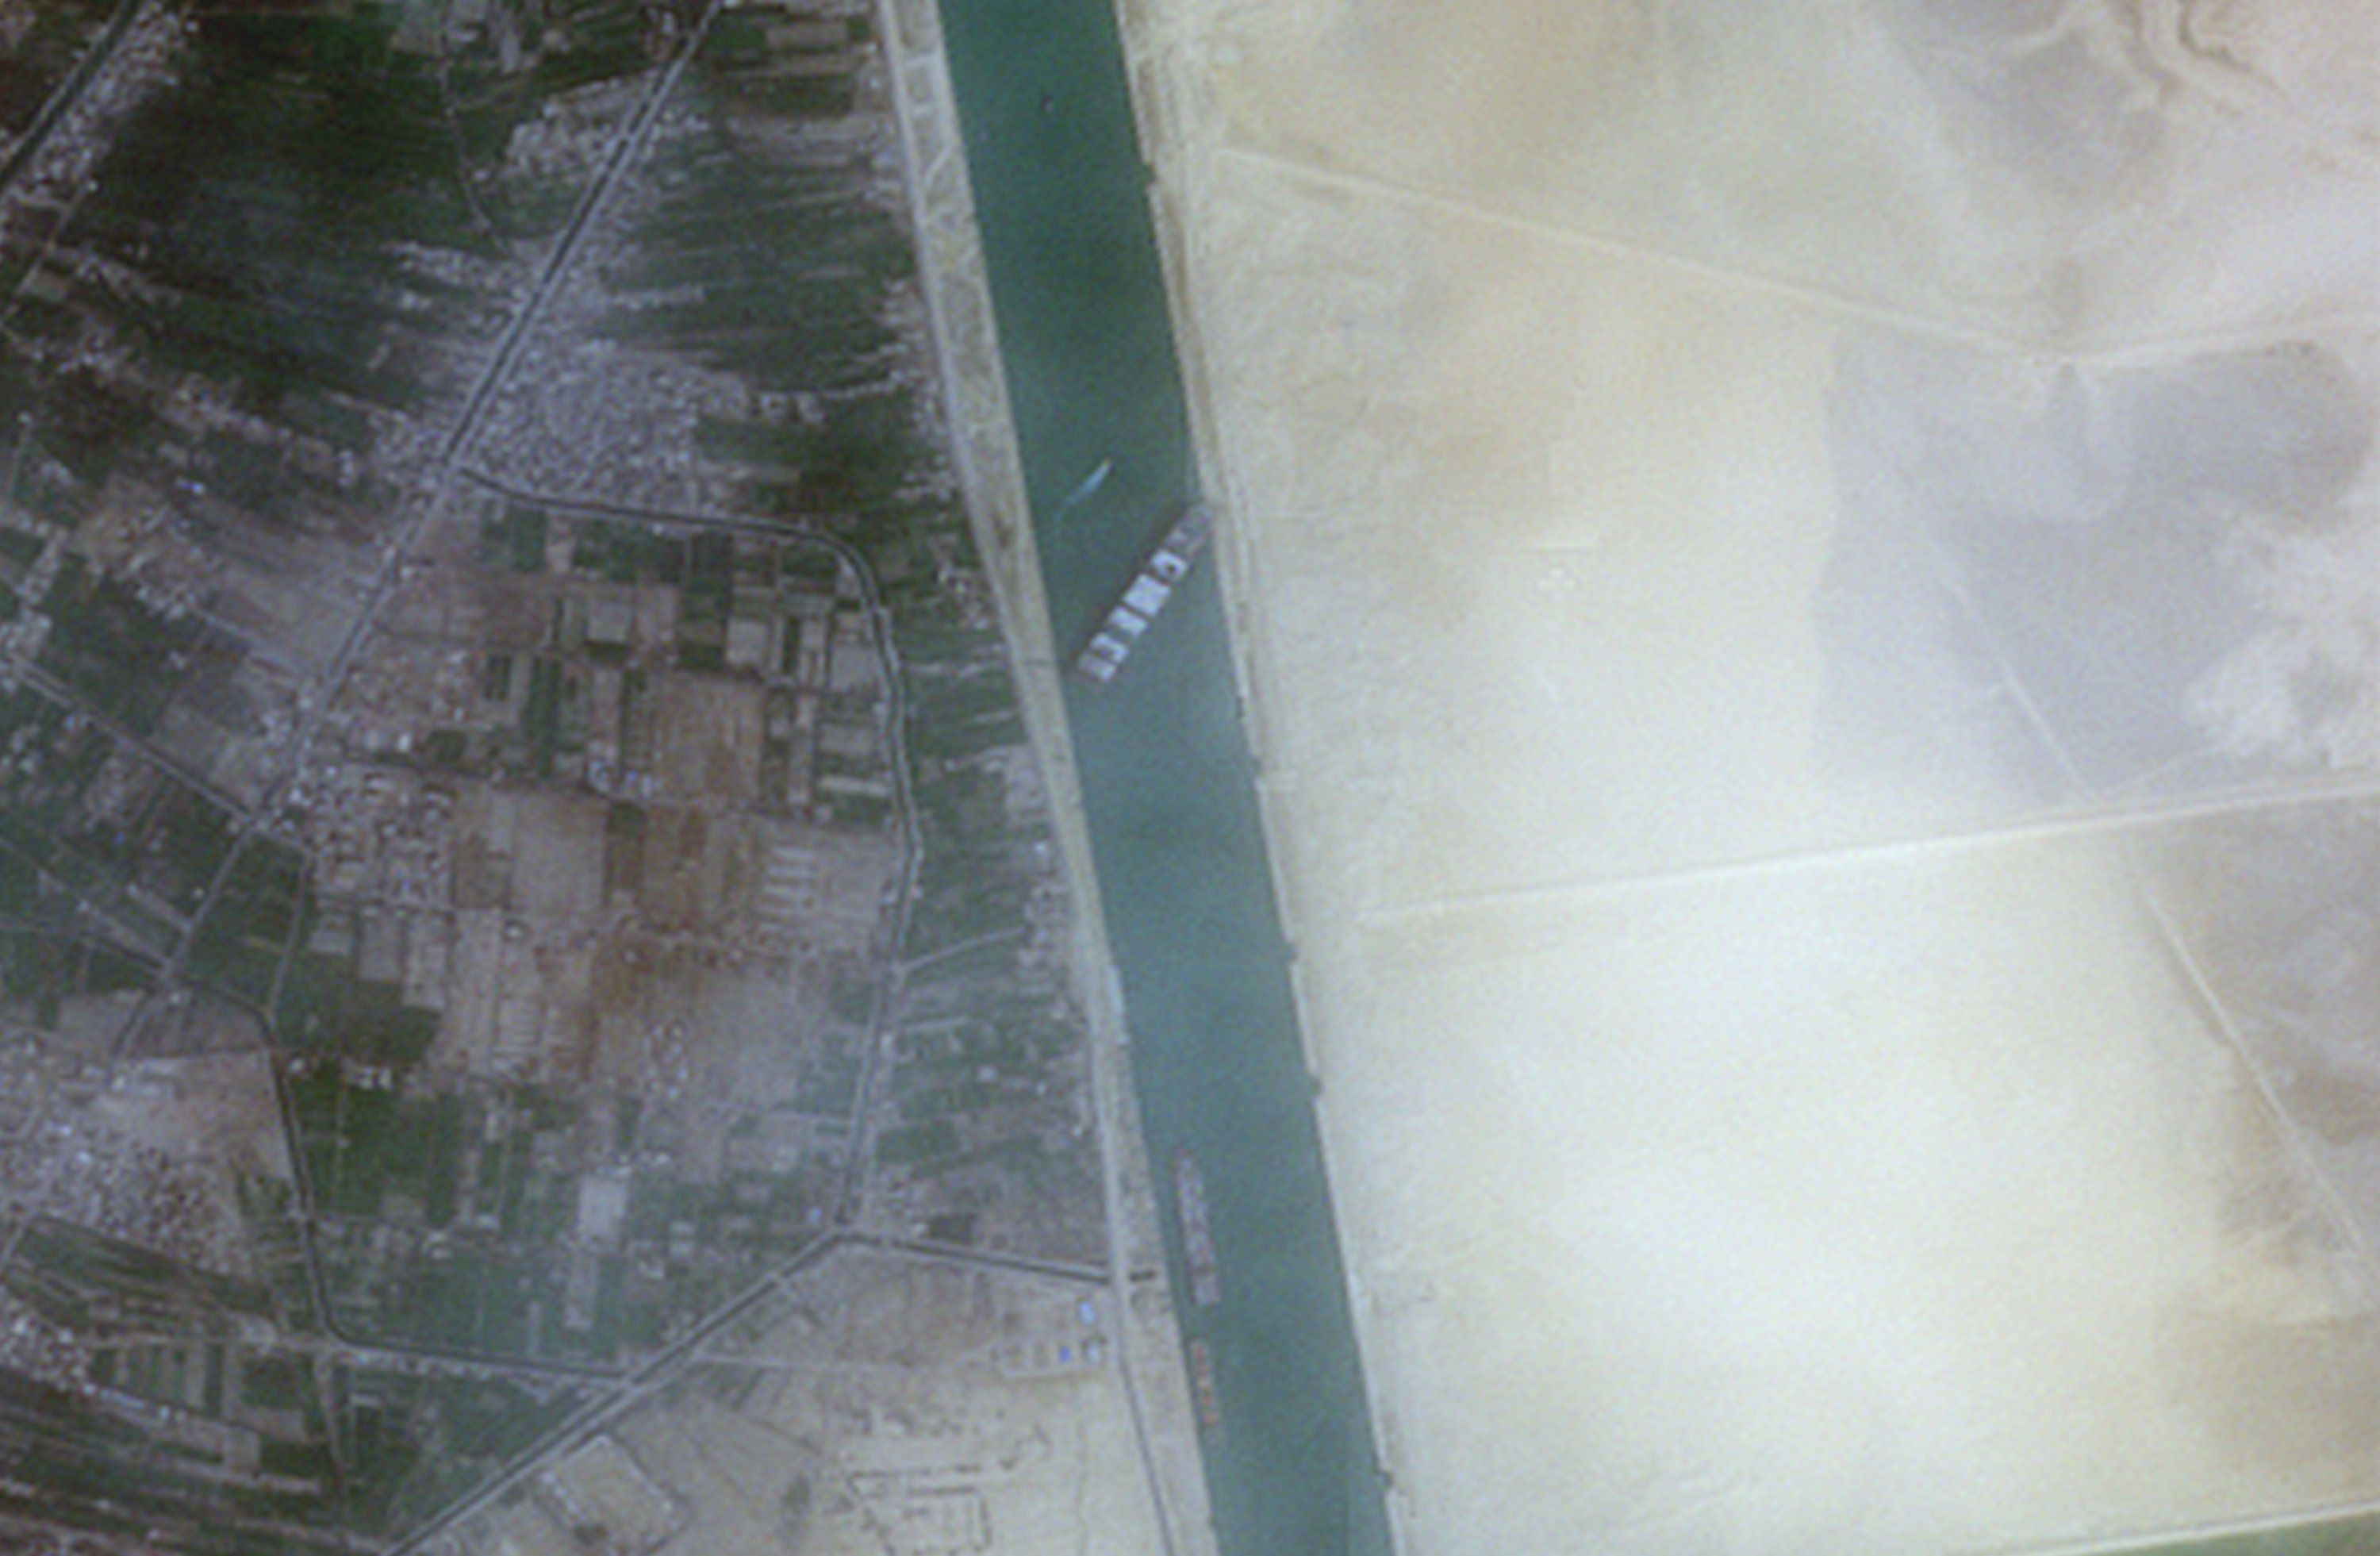 A closer view of the Ever Given container ship seen blocking the Suez Canal in this satellite image, March 24, 2021. (Reuters Photo)